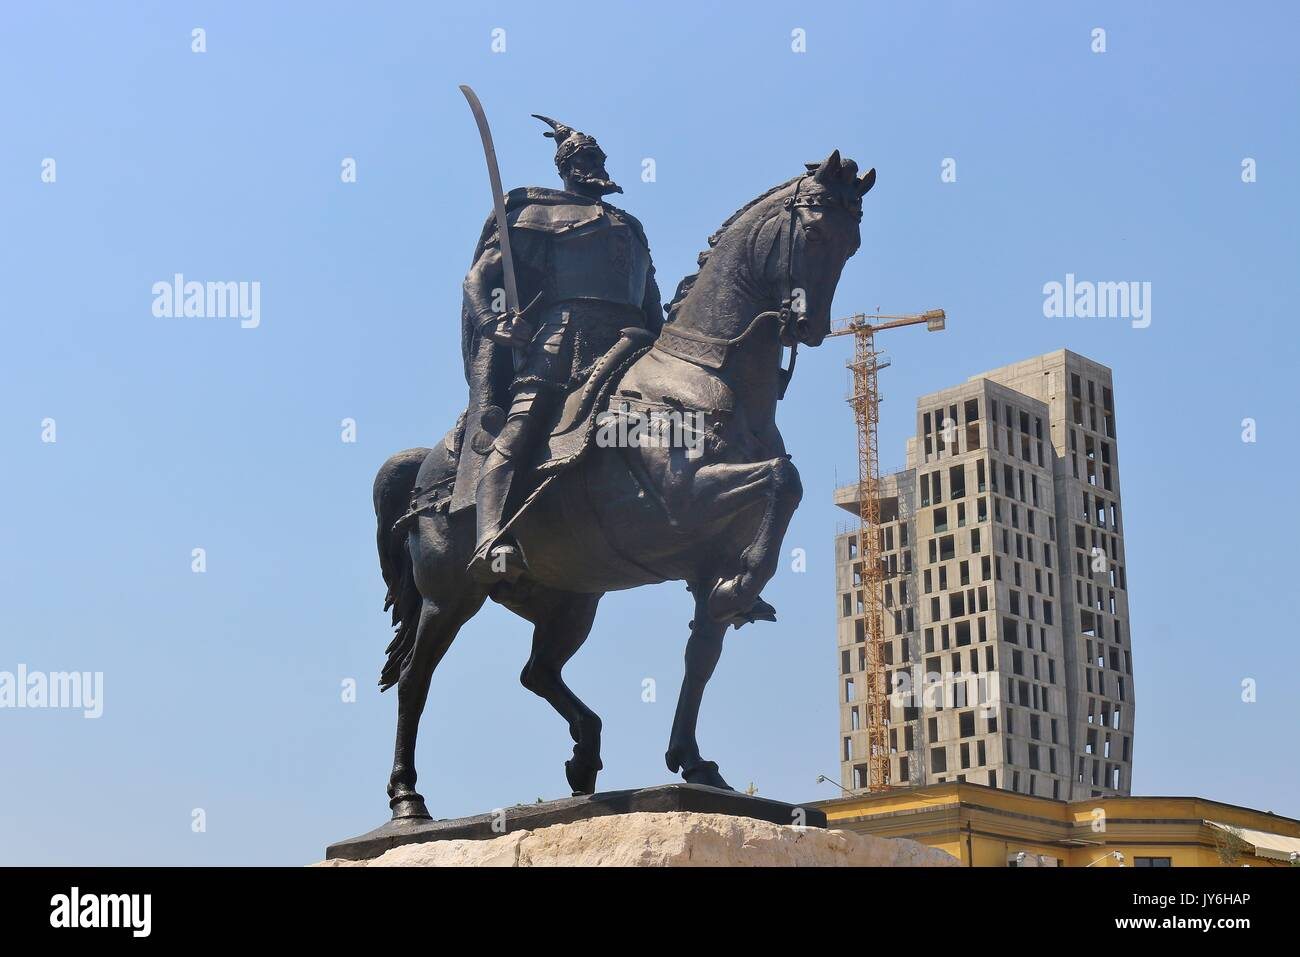 Tirana, Albania: Statue of Skanderbeg or Gjergj Kastrioti and the unfinished 4 evergreem building. On the Skanderbeg square. South-east Europe. - Stock Image